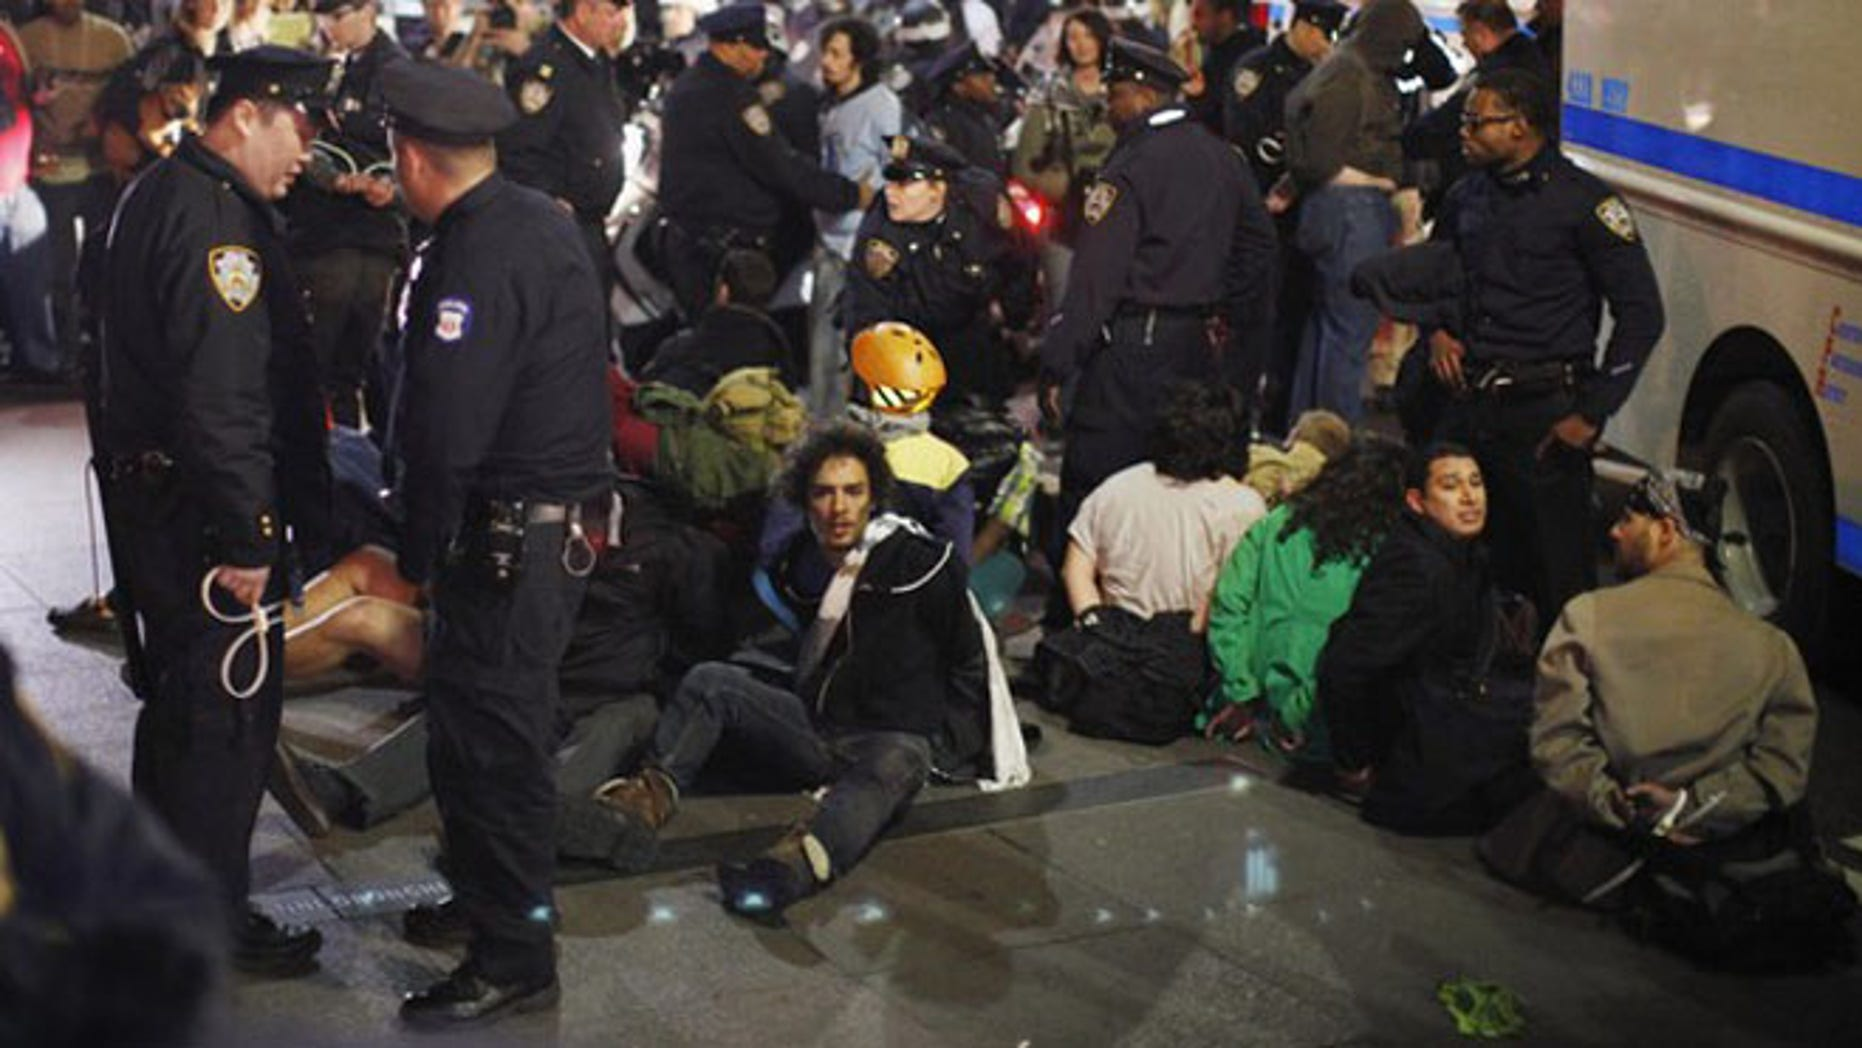 March 17, 2012: Members of the Occupy Wall Street movement are arrested by NYPD officers after protesting at Zuccotti park in New York.